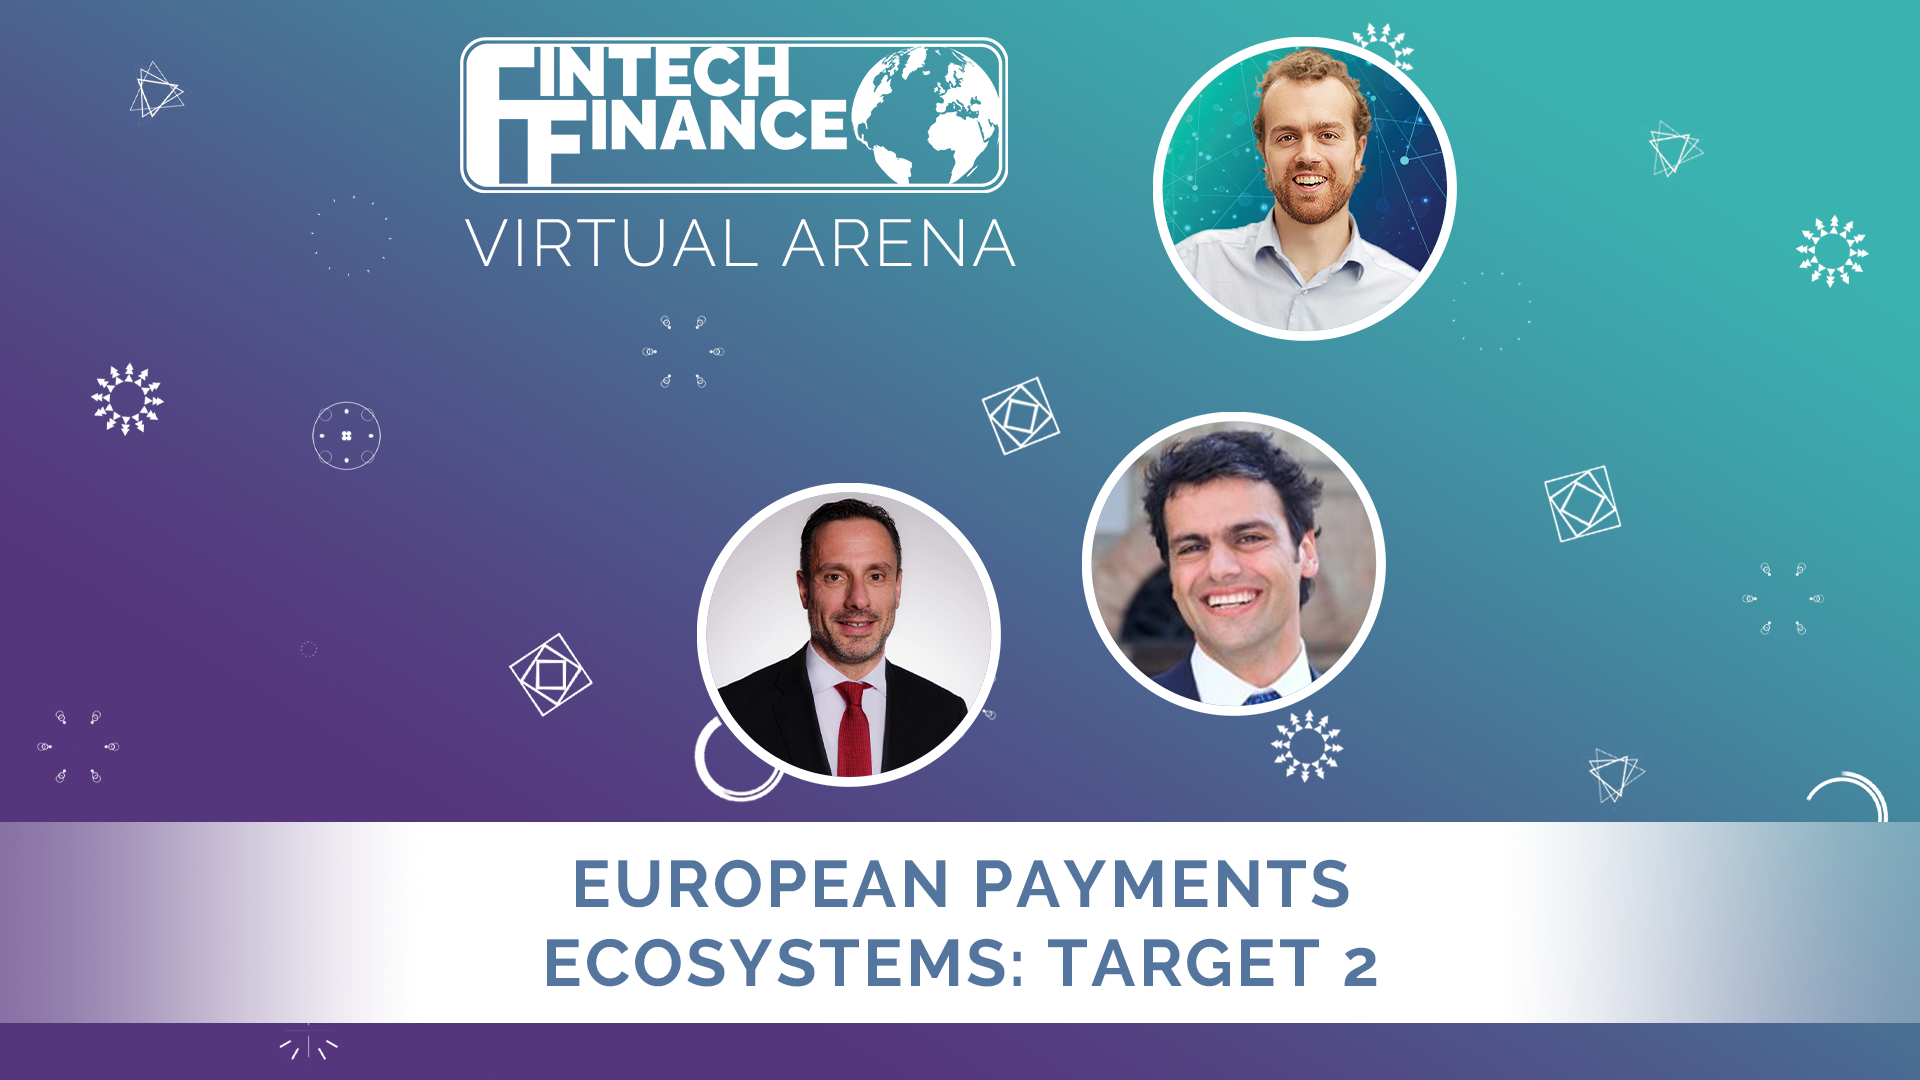 European Payments Ecosystem